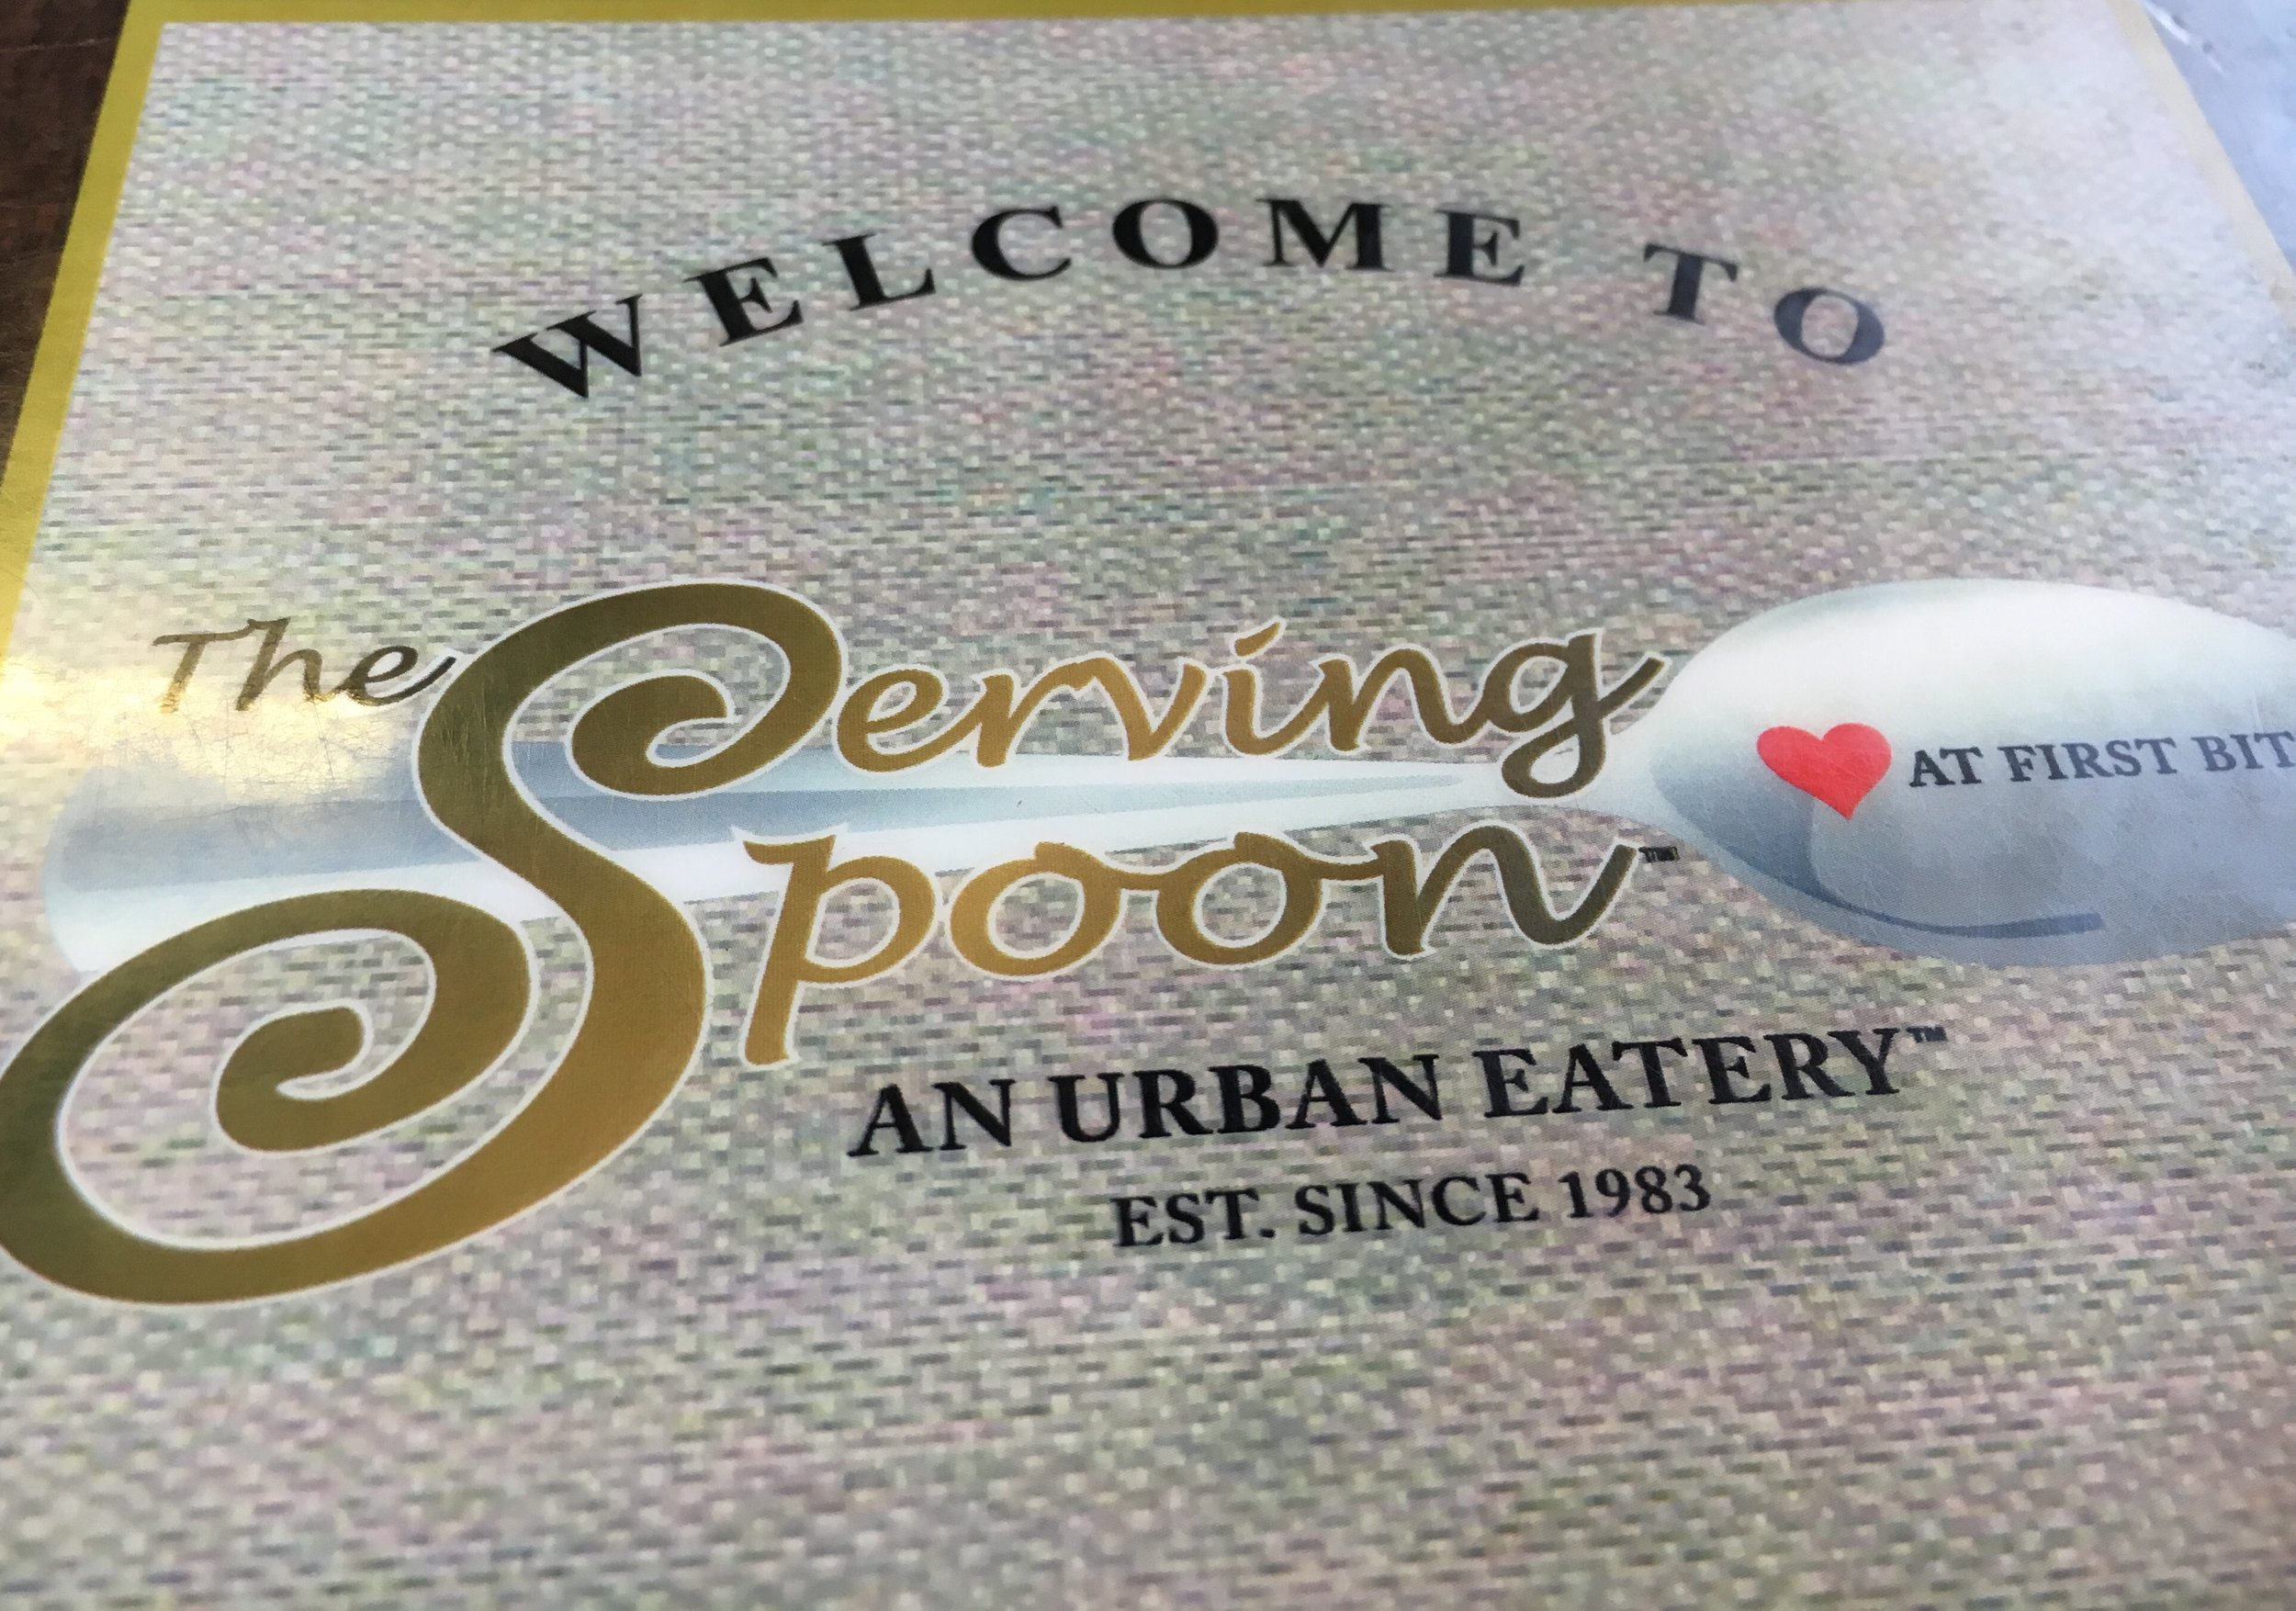 The Serving Spoon, a long standing restaurant for breakfast in Los Angeles,located on Centinela Blvd. Open from 6am to 2pm daily. Very popular on the weekends so be patient, because you will have to wait to be seated. Good food & even better prices!